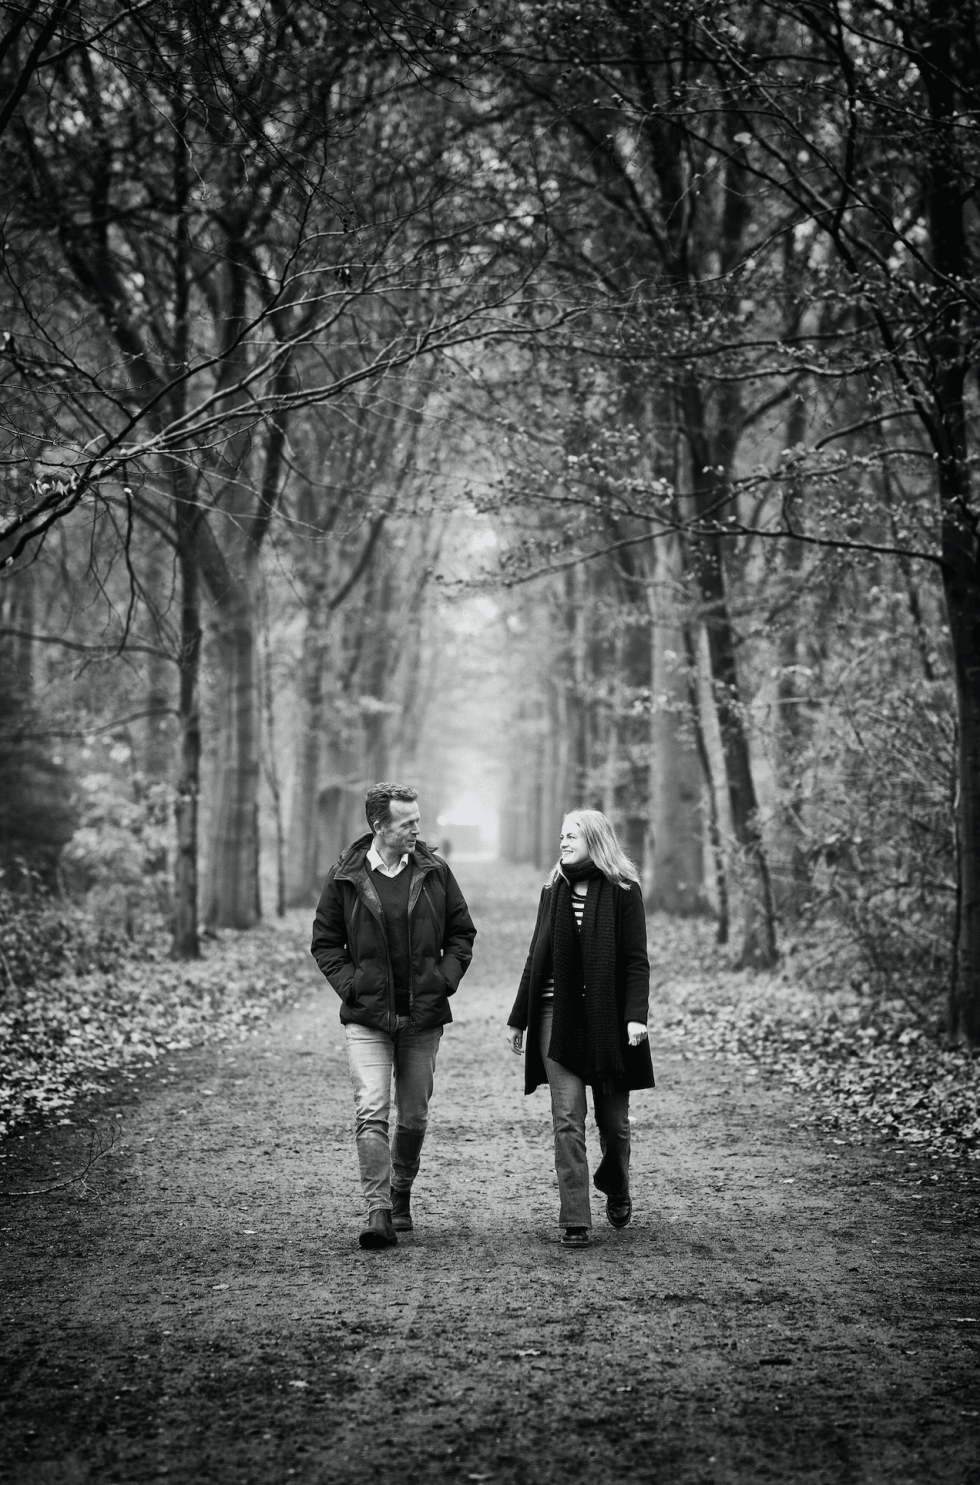 Image of two people walking in a forest